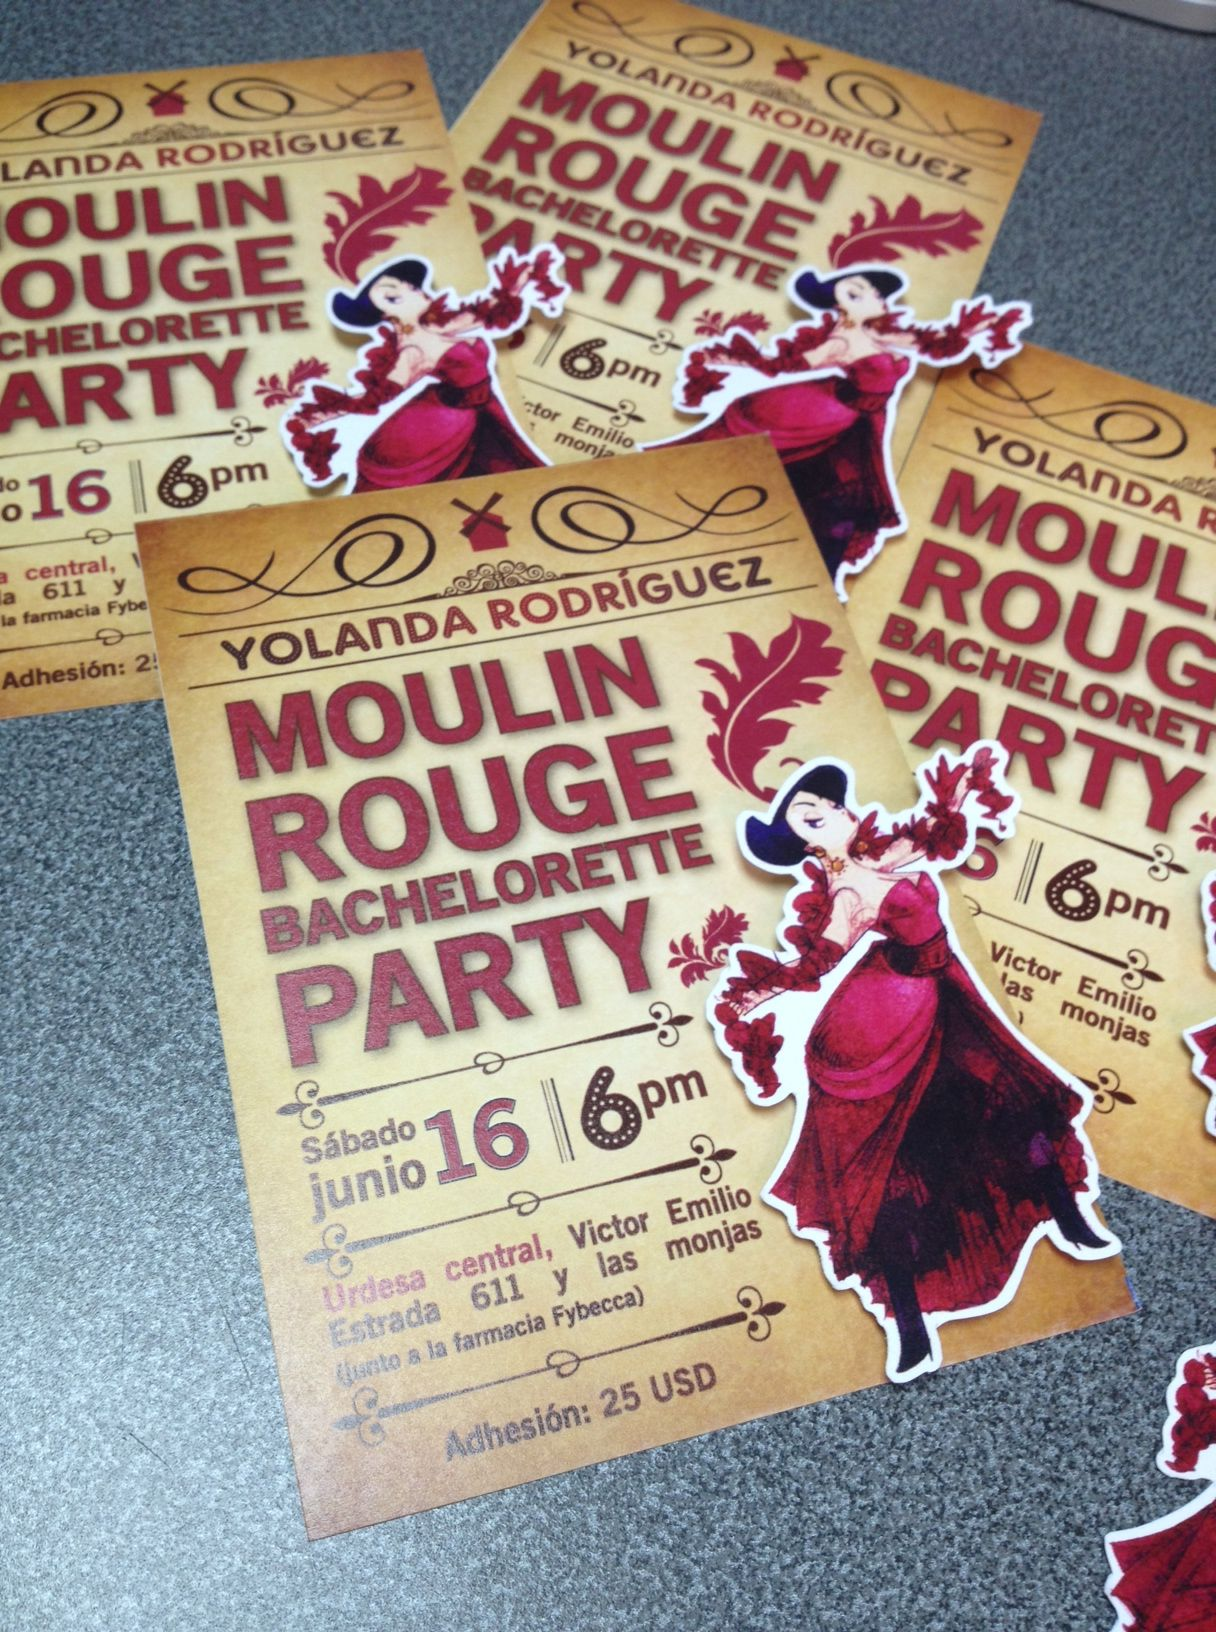 Moulin rouge party moulin rouge party pinterest - Moulin Rouge Bachelorette Party Invites Inspiration In Case I Throw More Of